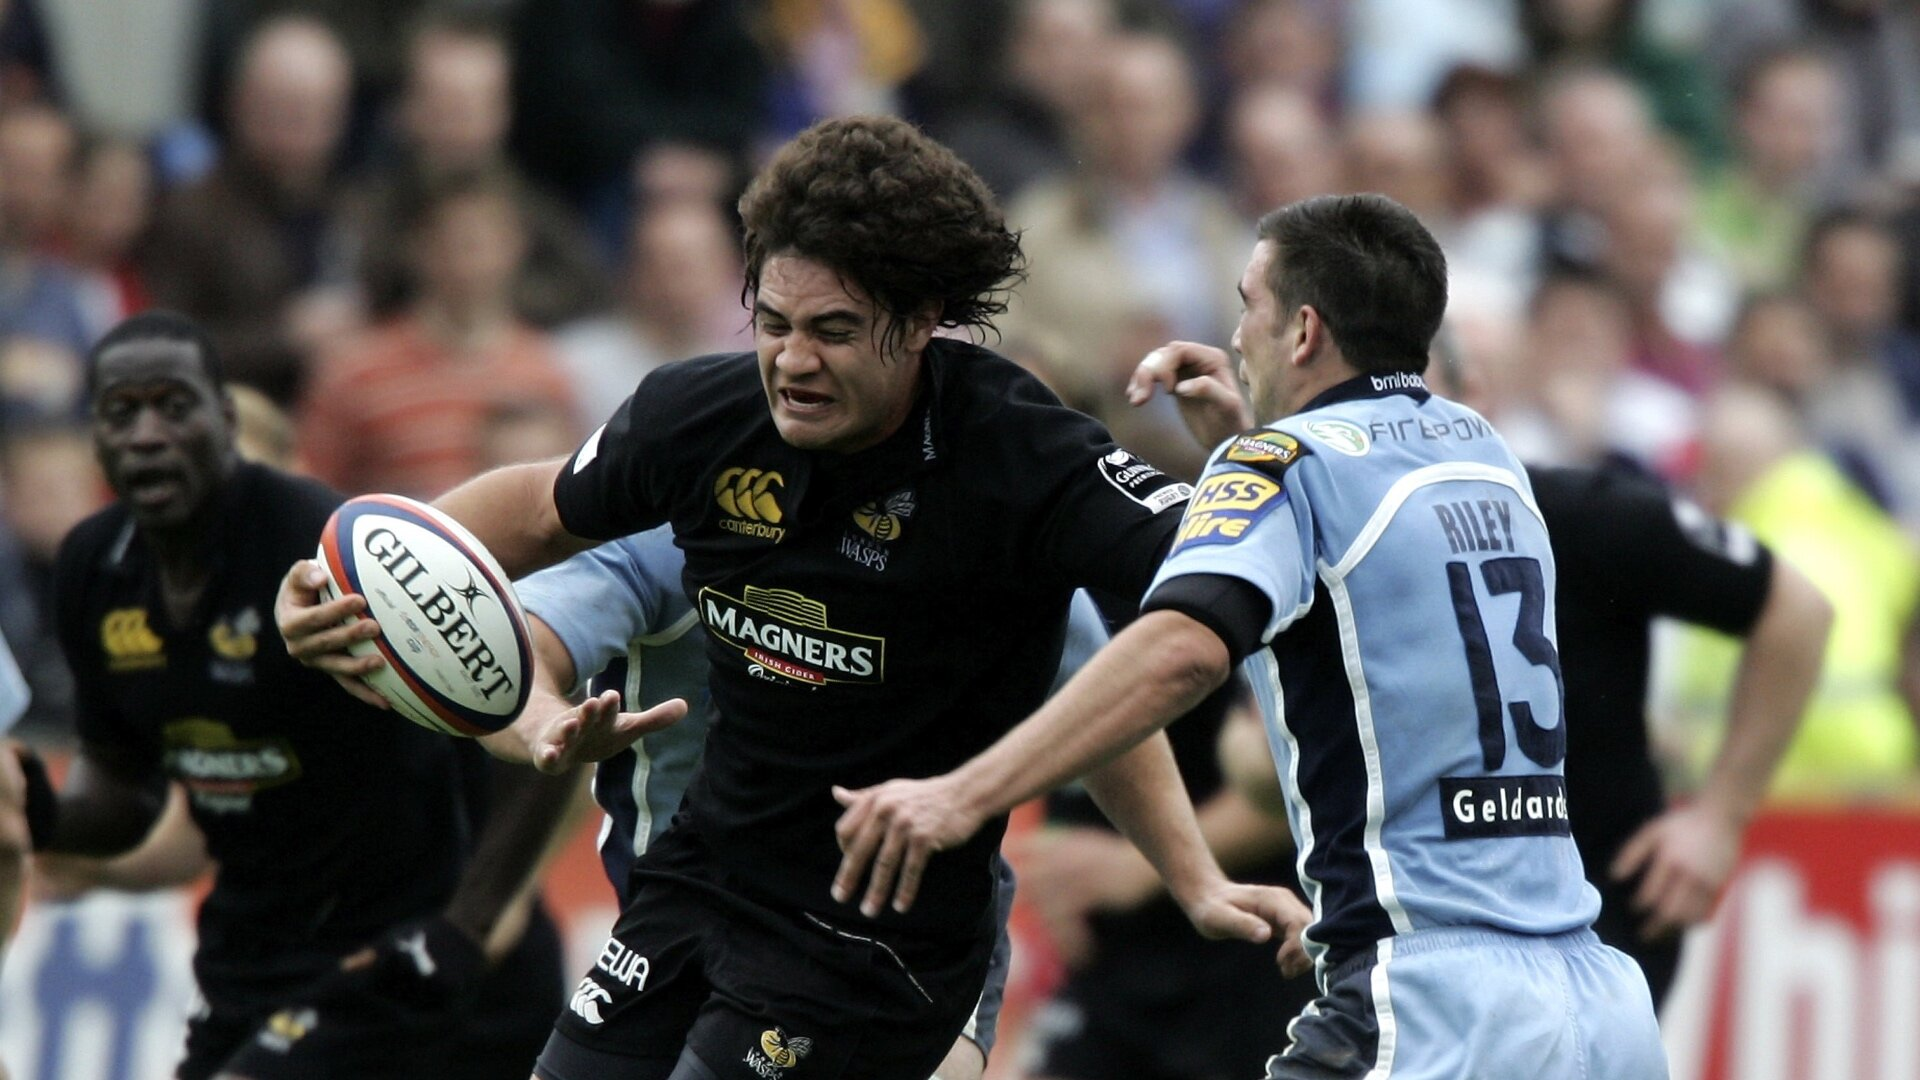 Leo playing for Wasps